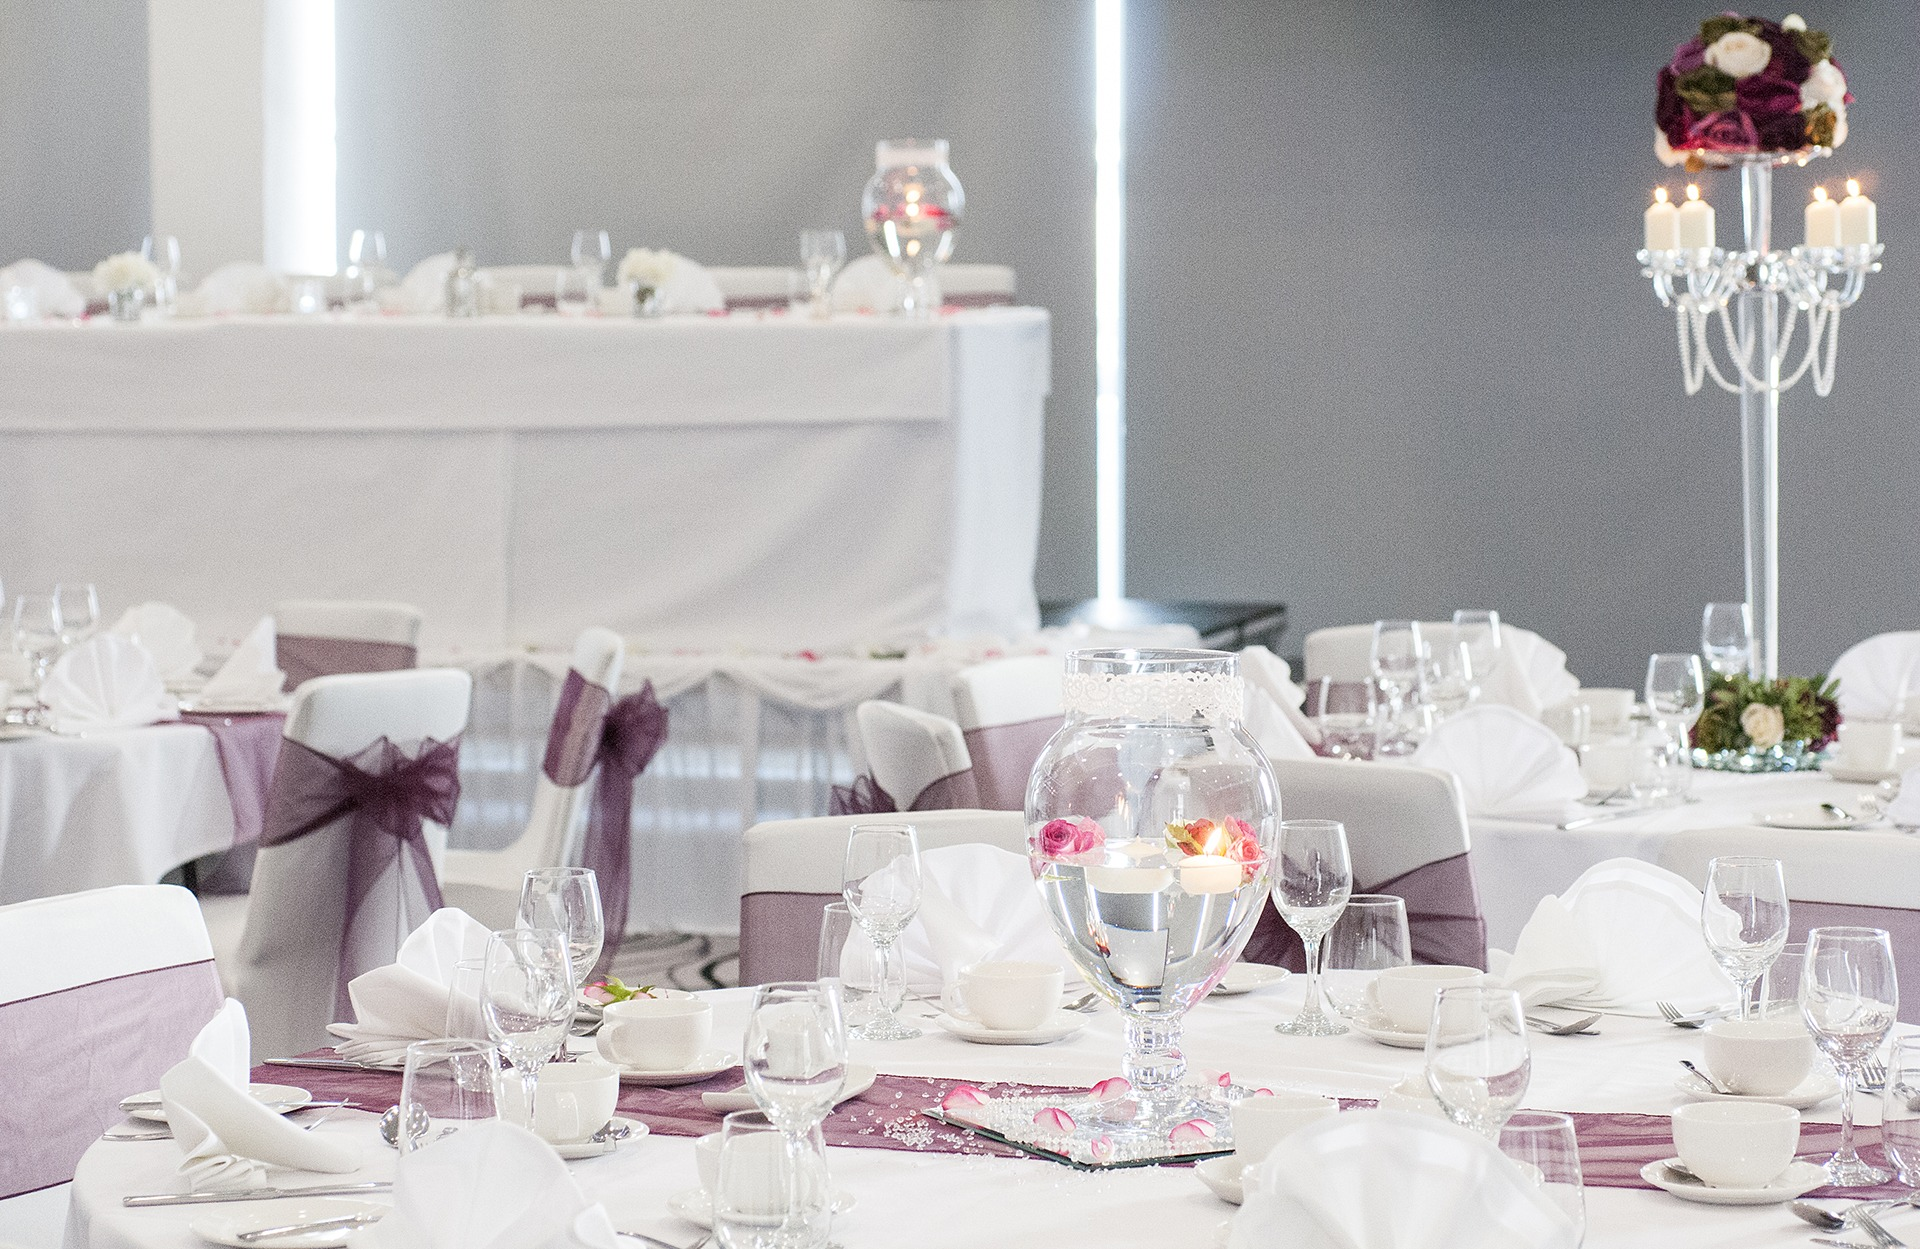 Weddings – Asian Weddings - AJ Bell Stadium